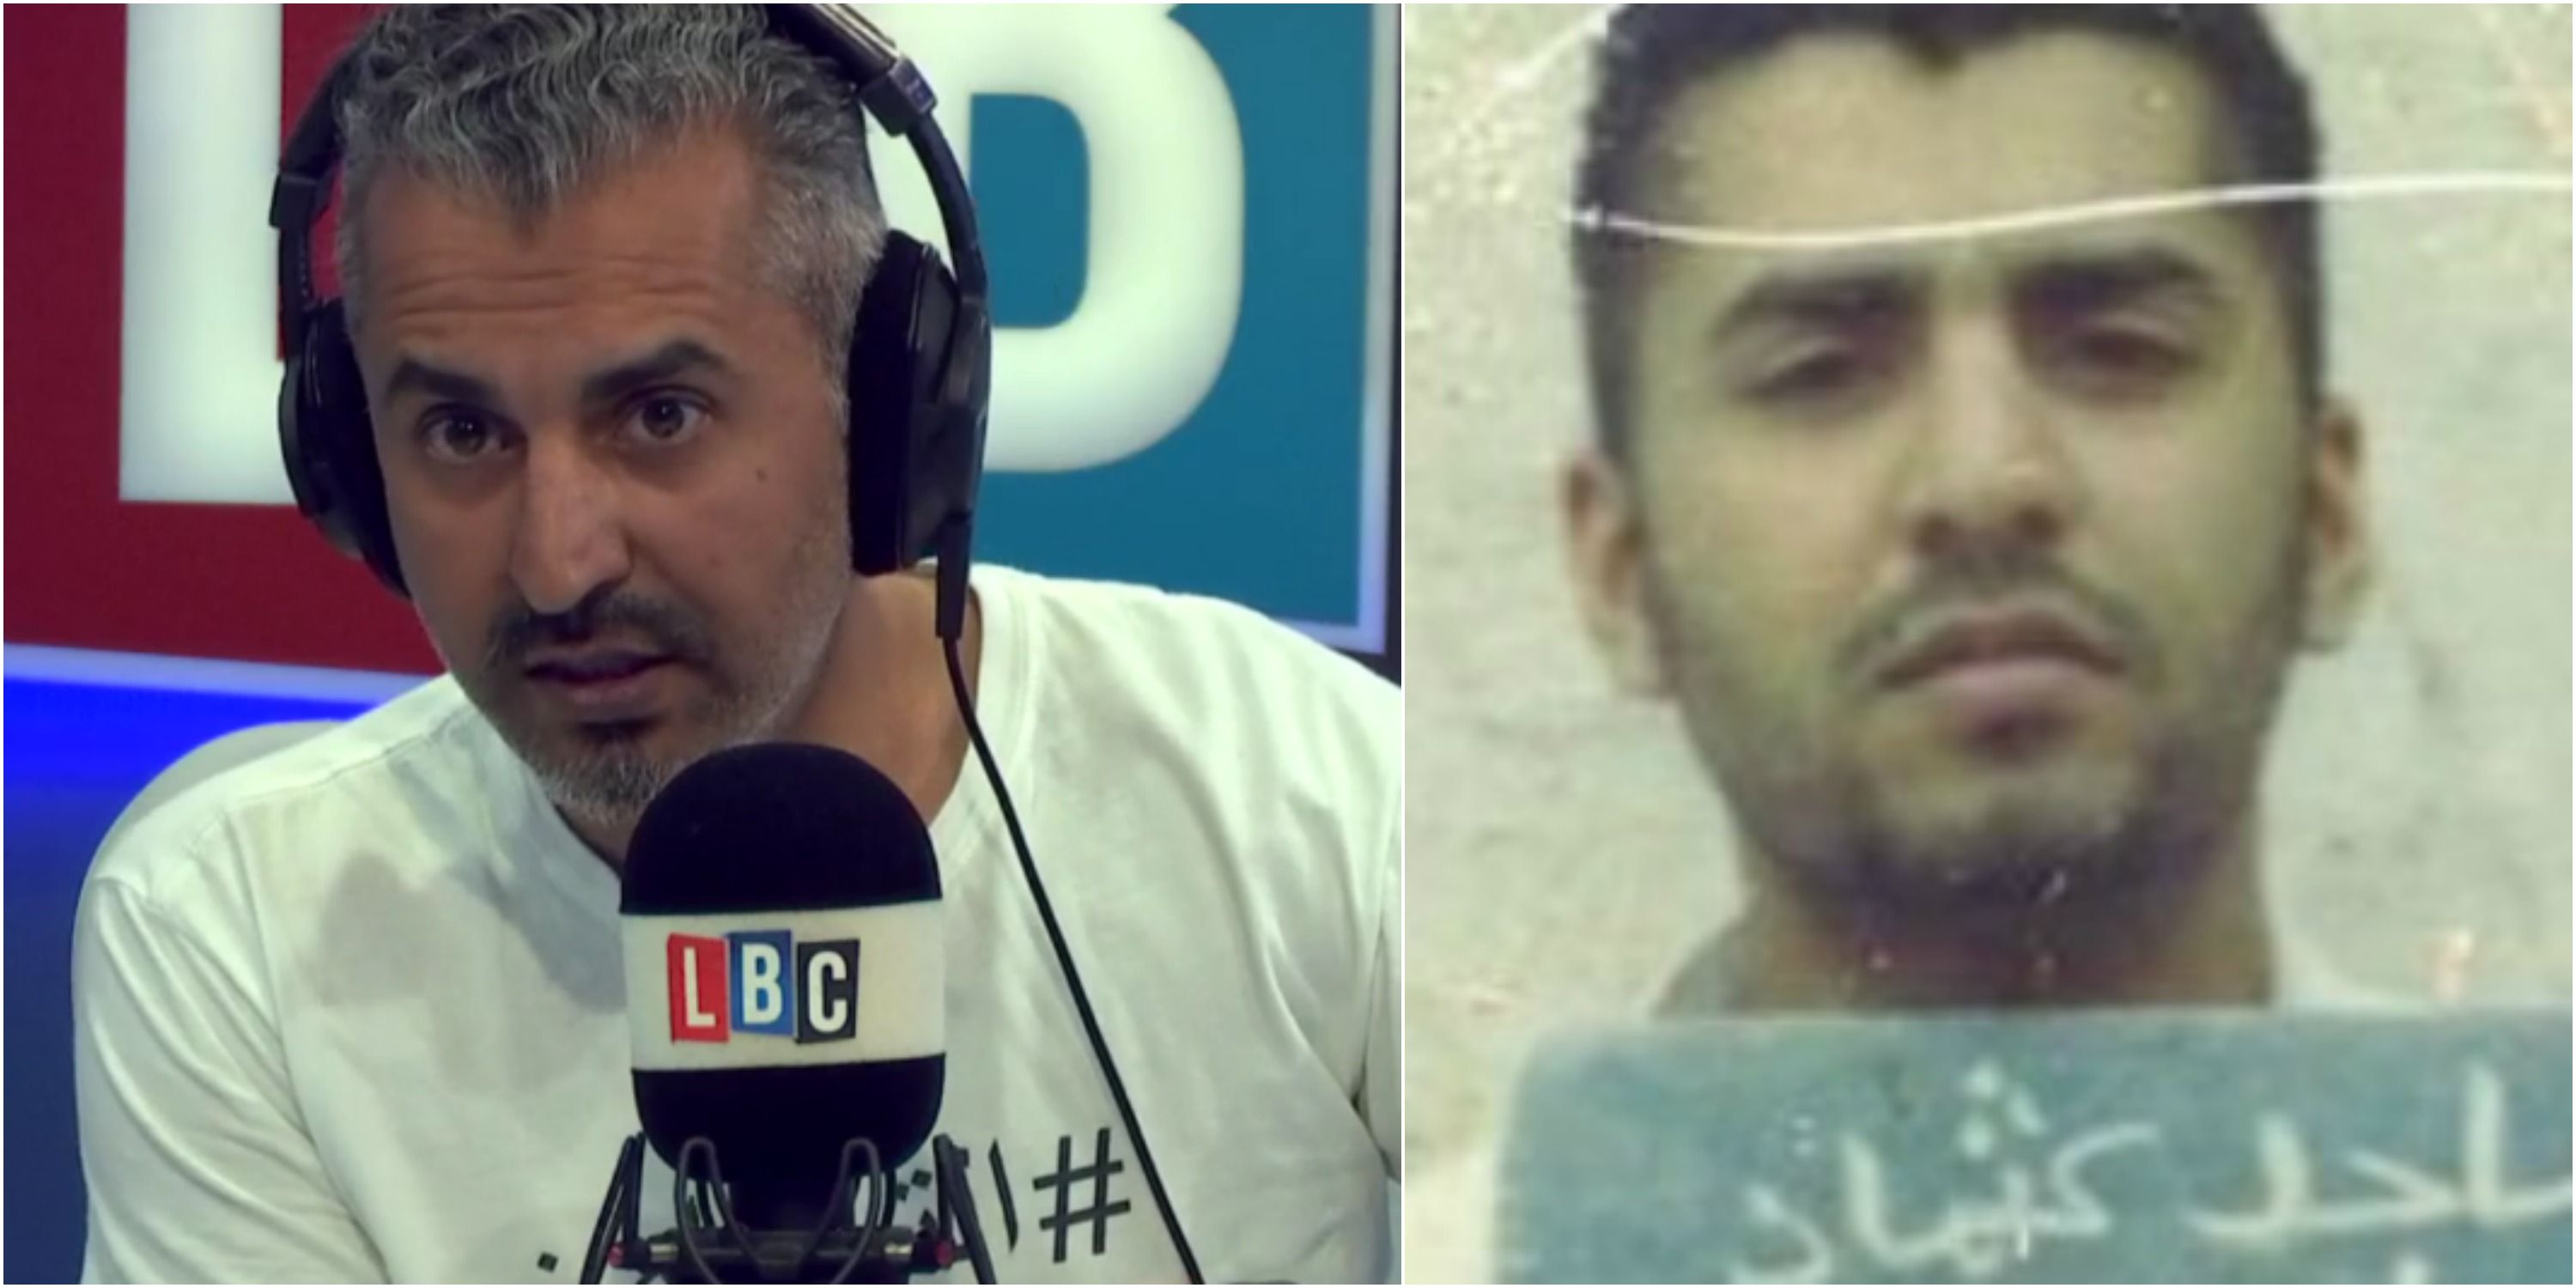 Maajid Nawaz internment